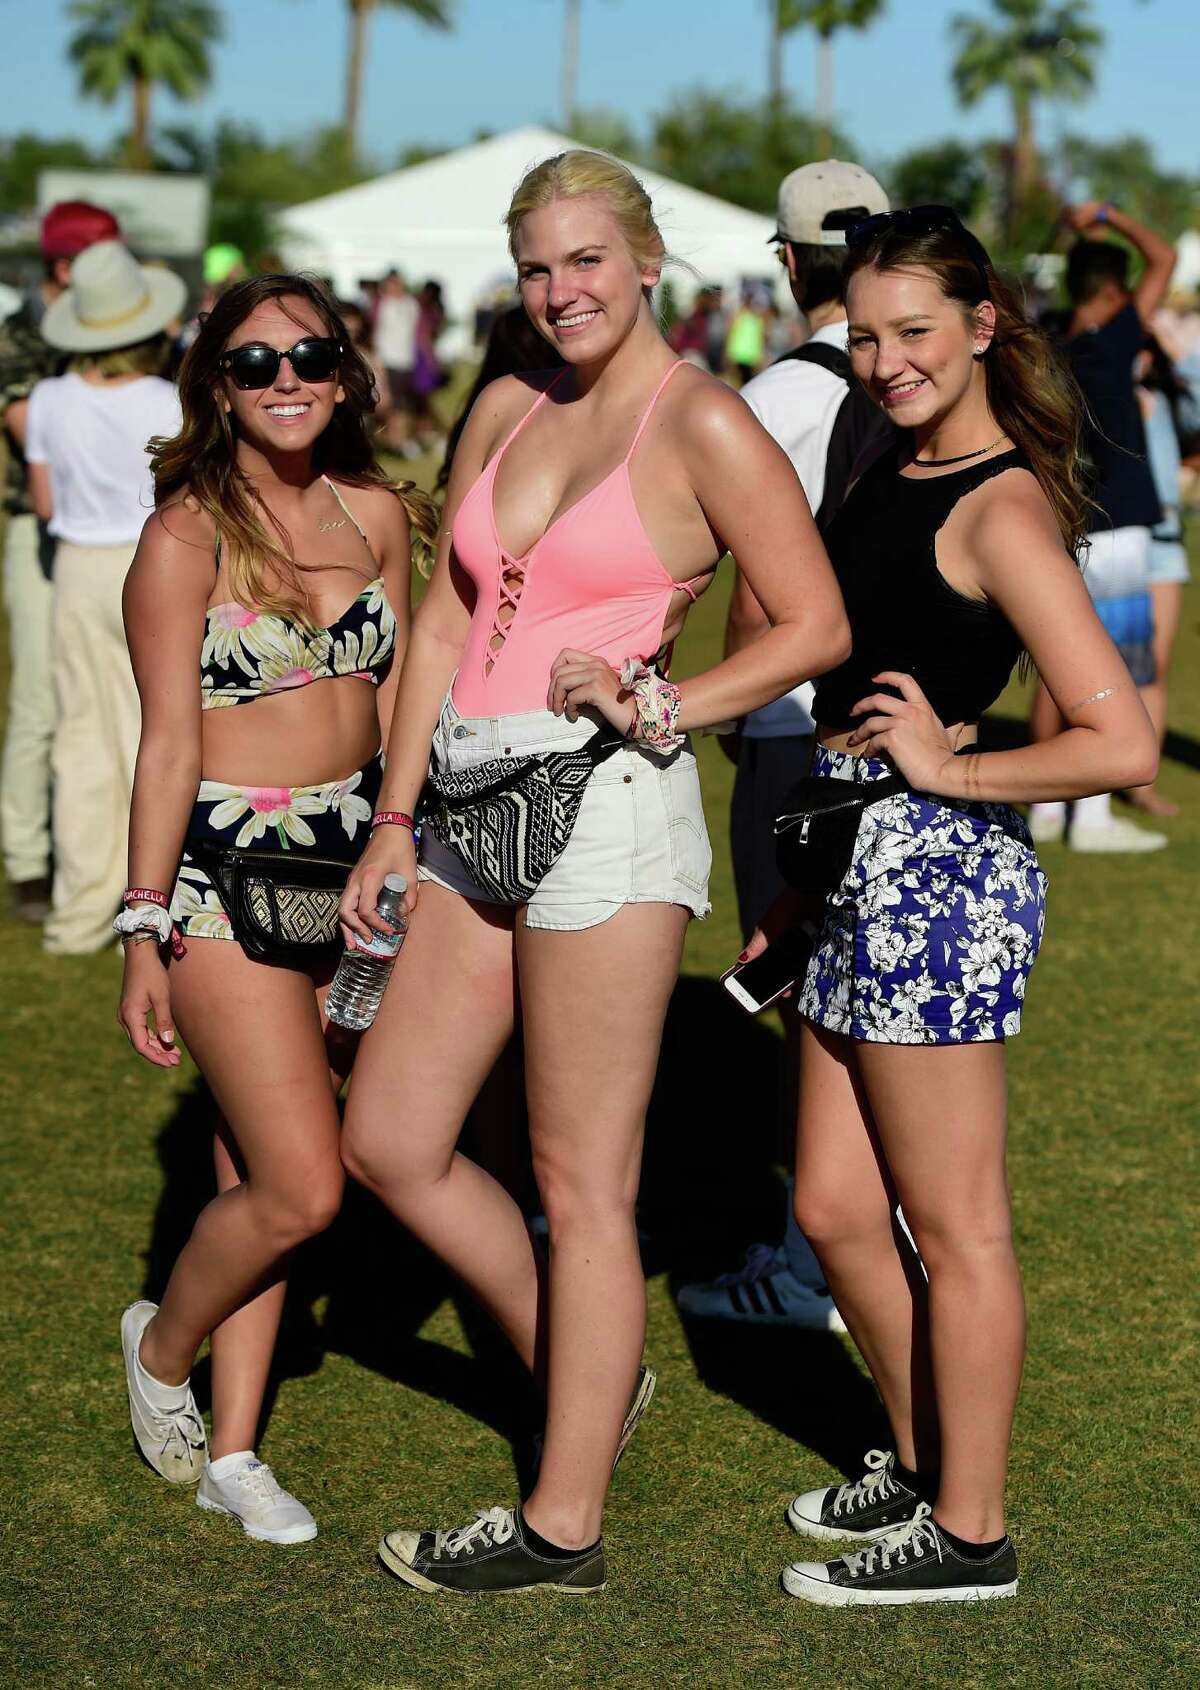 Once you buy tickets to Coachella, the real work begins - choosing the perfect festival outfit. Attendees to the California festival's second weekend show off what they came up with after possibly spending weeks agonizing over swimsuits, cutoff shorts, funny hats and long, flowery gowns. Click to see the most popular styles from weekend two.